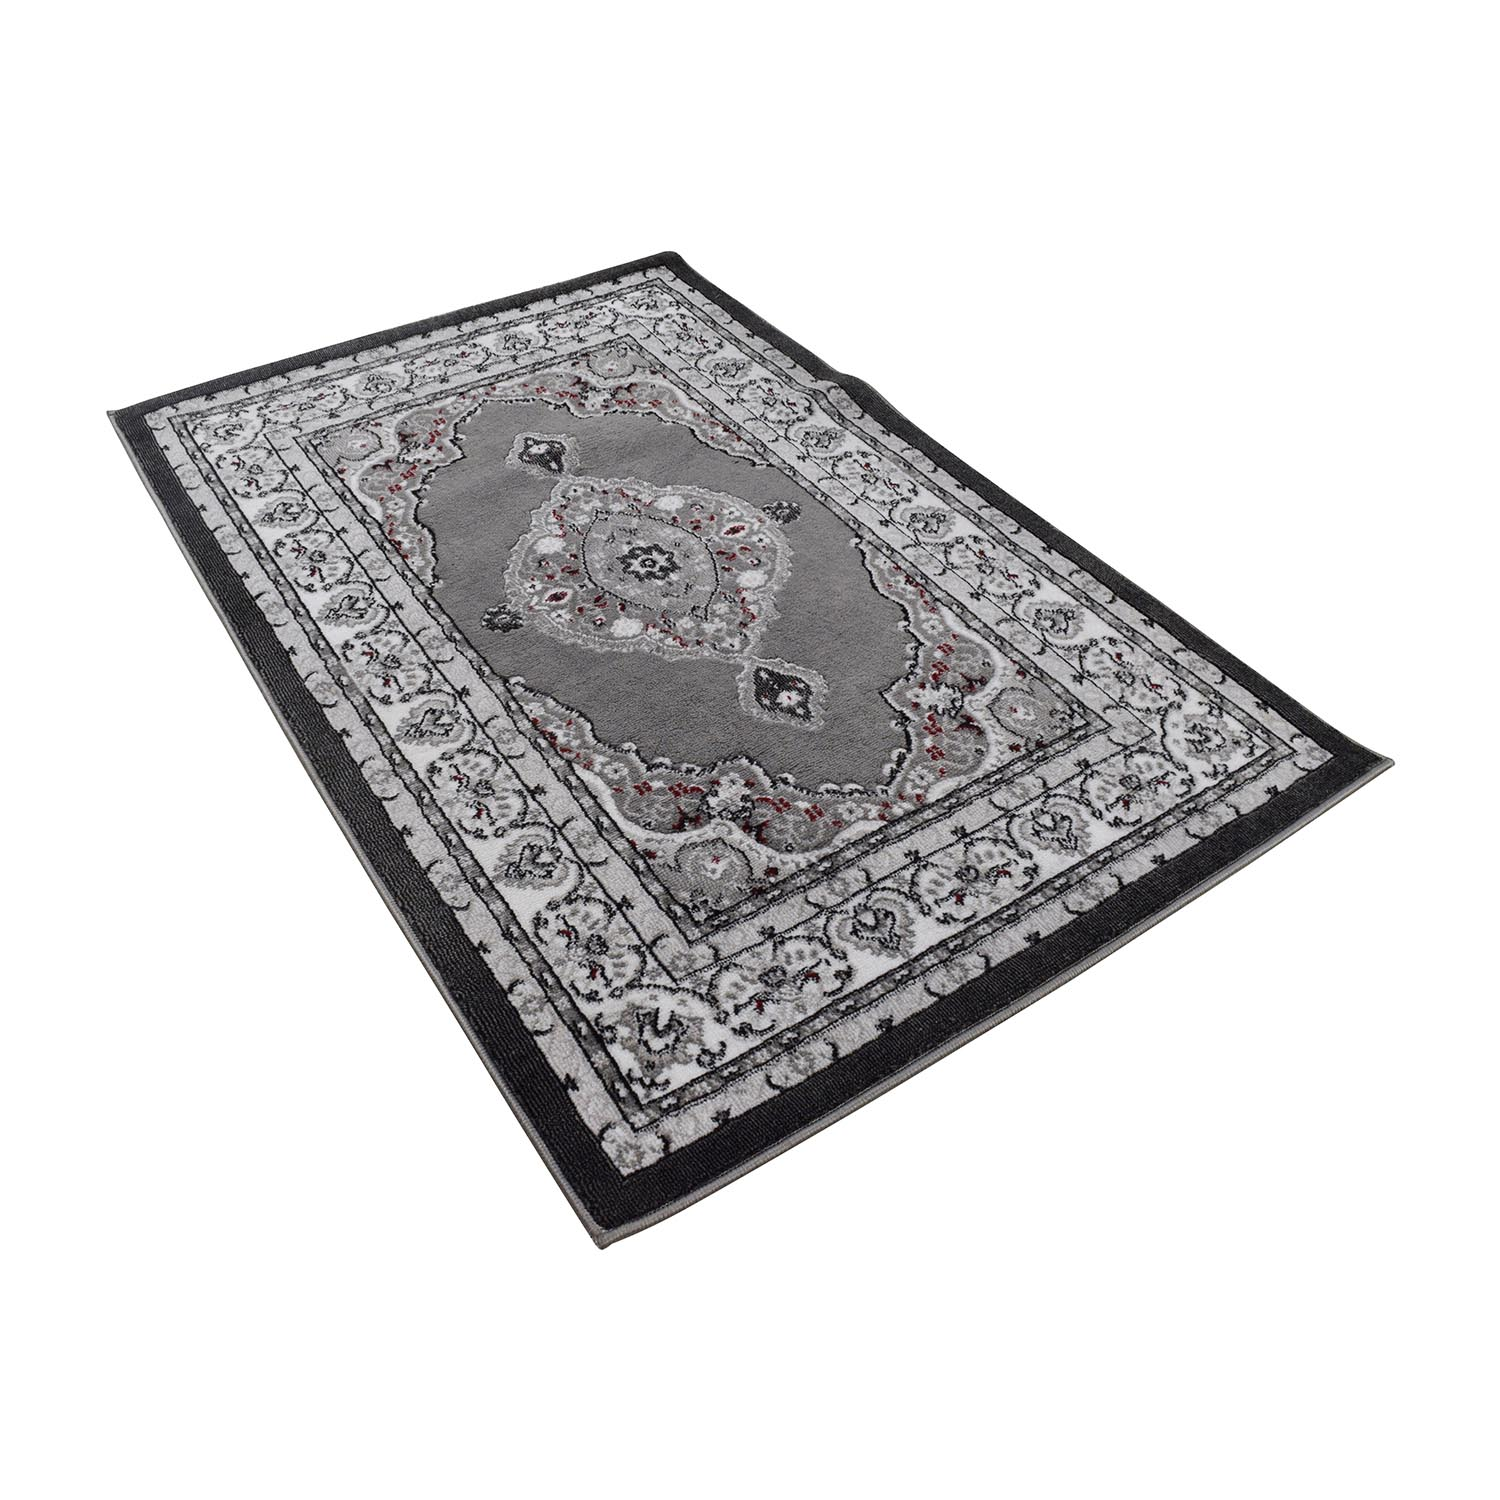 Sensational 57 Off Well Woven Dulcet Collection Grey And Black Print Rug Decor Dailytribune Chair Design For Home Dailytribuneorg